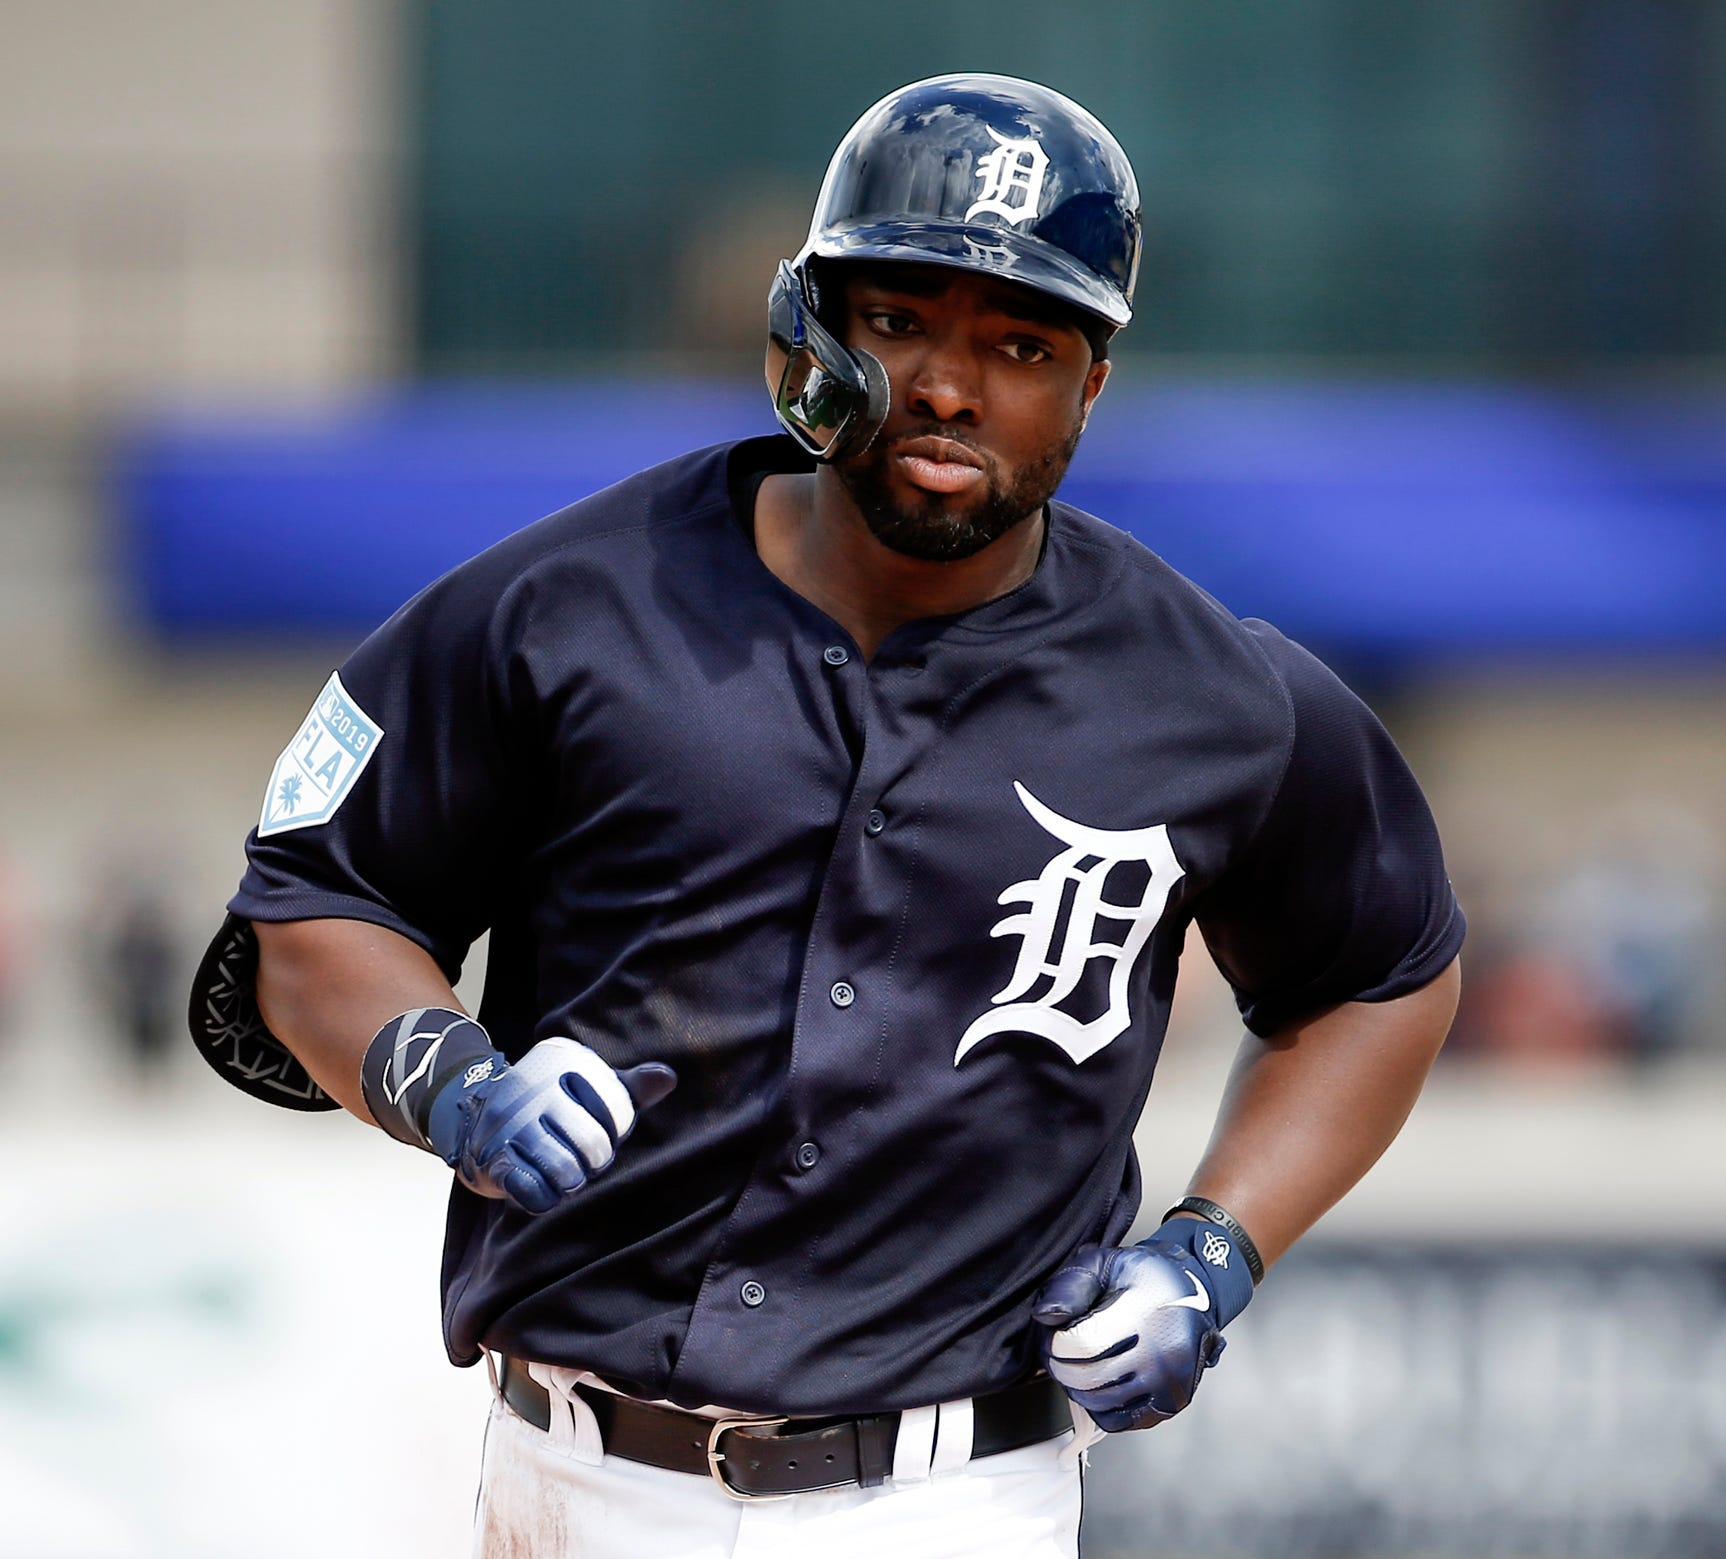 Tigers left fielder Christin Stewart rounds third base after hitting a grand slam home run during the third inning of the spring training game against the Yankees at Publix Field at Joker Marchant Stadium on Wednesday, Feb. 27, 2019.